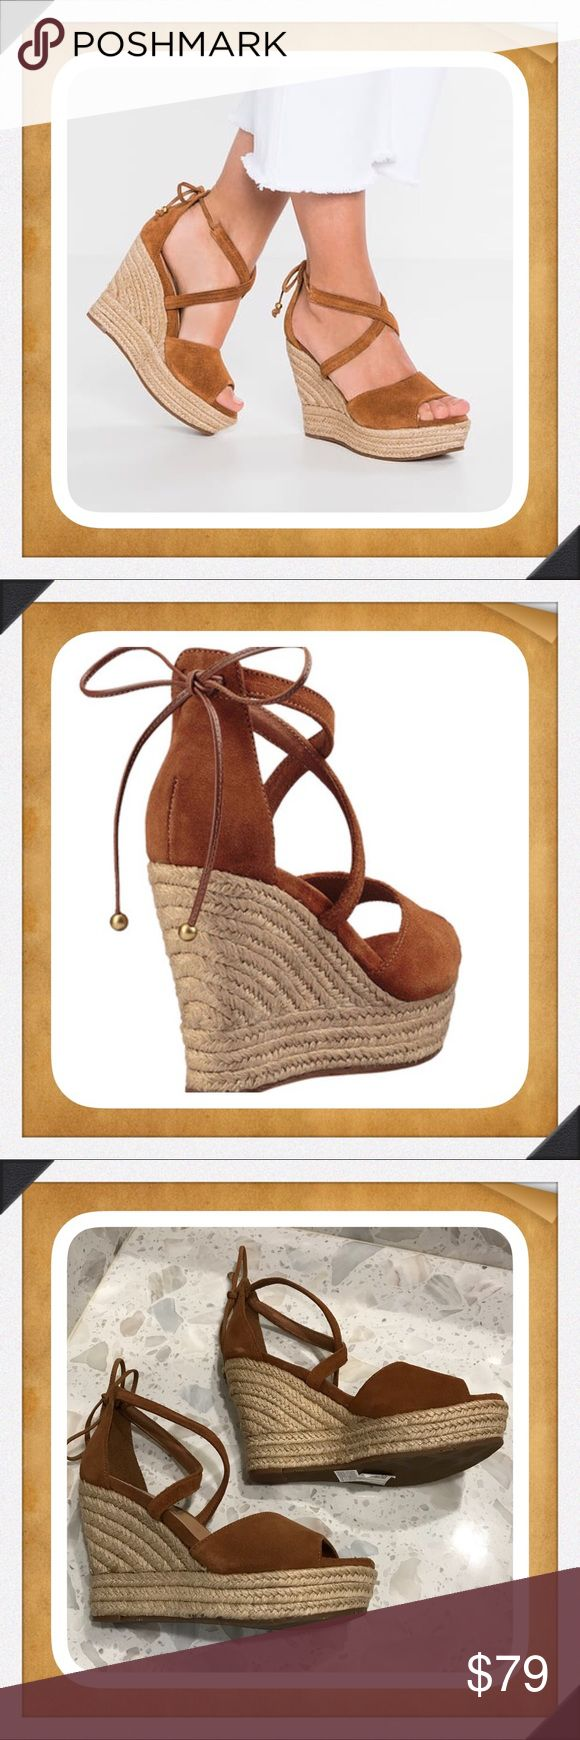 Ugg Reagan Chestnut Suede Wedge Sandals The Ugg Reagan